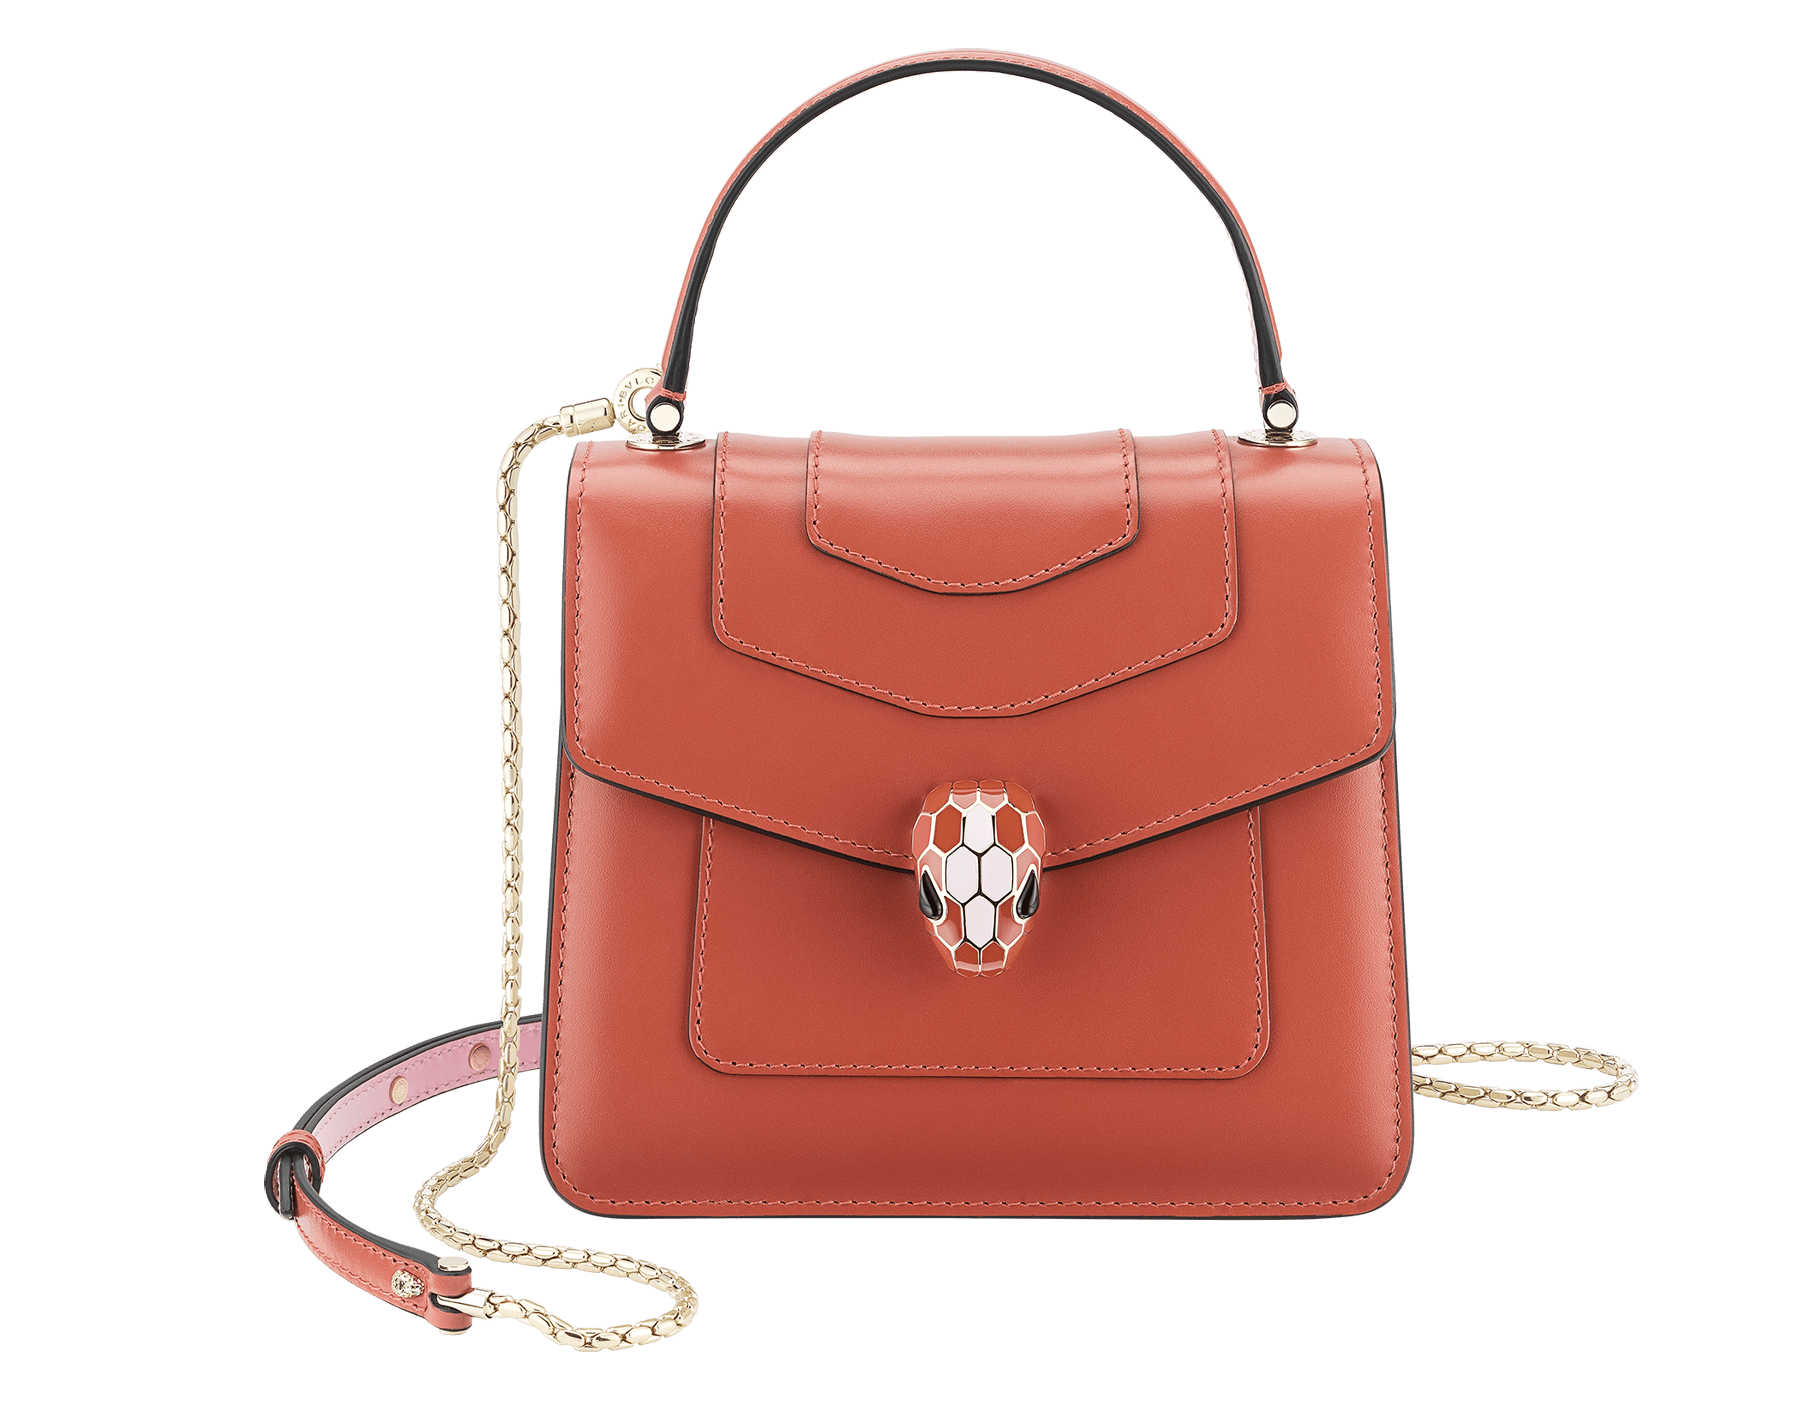 Serpenti Forever crossbody bag in imperial topaz calf leather with Roman garnet, rosa di francia and white agate calf leather sides. Iconic snakehead closure in light gold plated brass embellished with imperial topaz and rosa di francia enamel and black onyx eyes. 288889 image 1